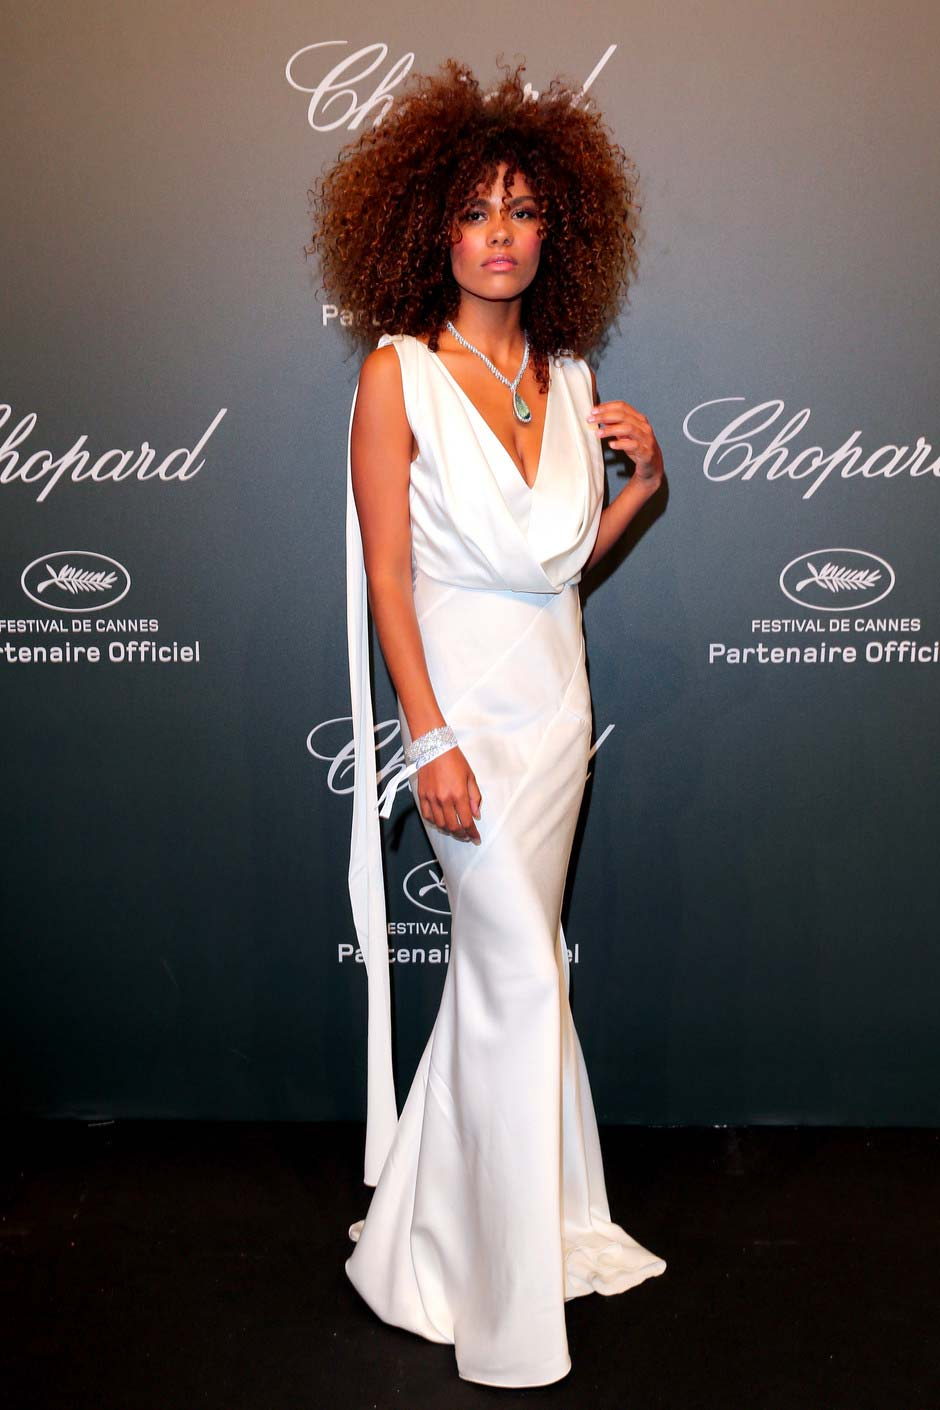 Cannes 2017 - Day 3 - Chopard SPACE Party - Model Tina Kunakey